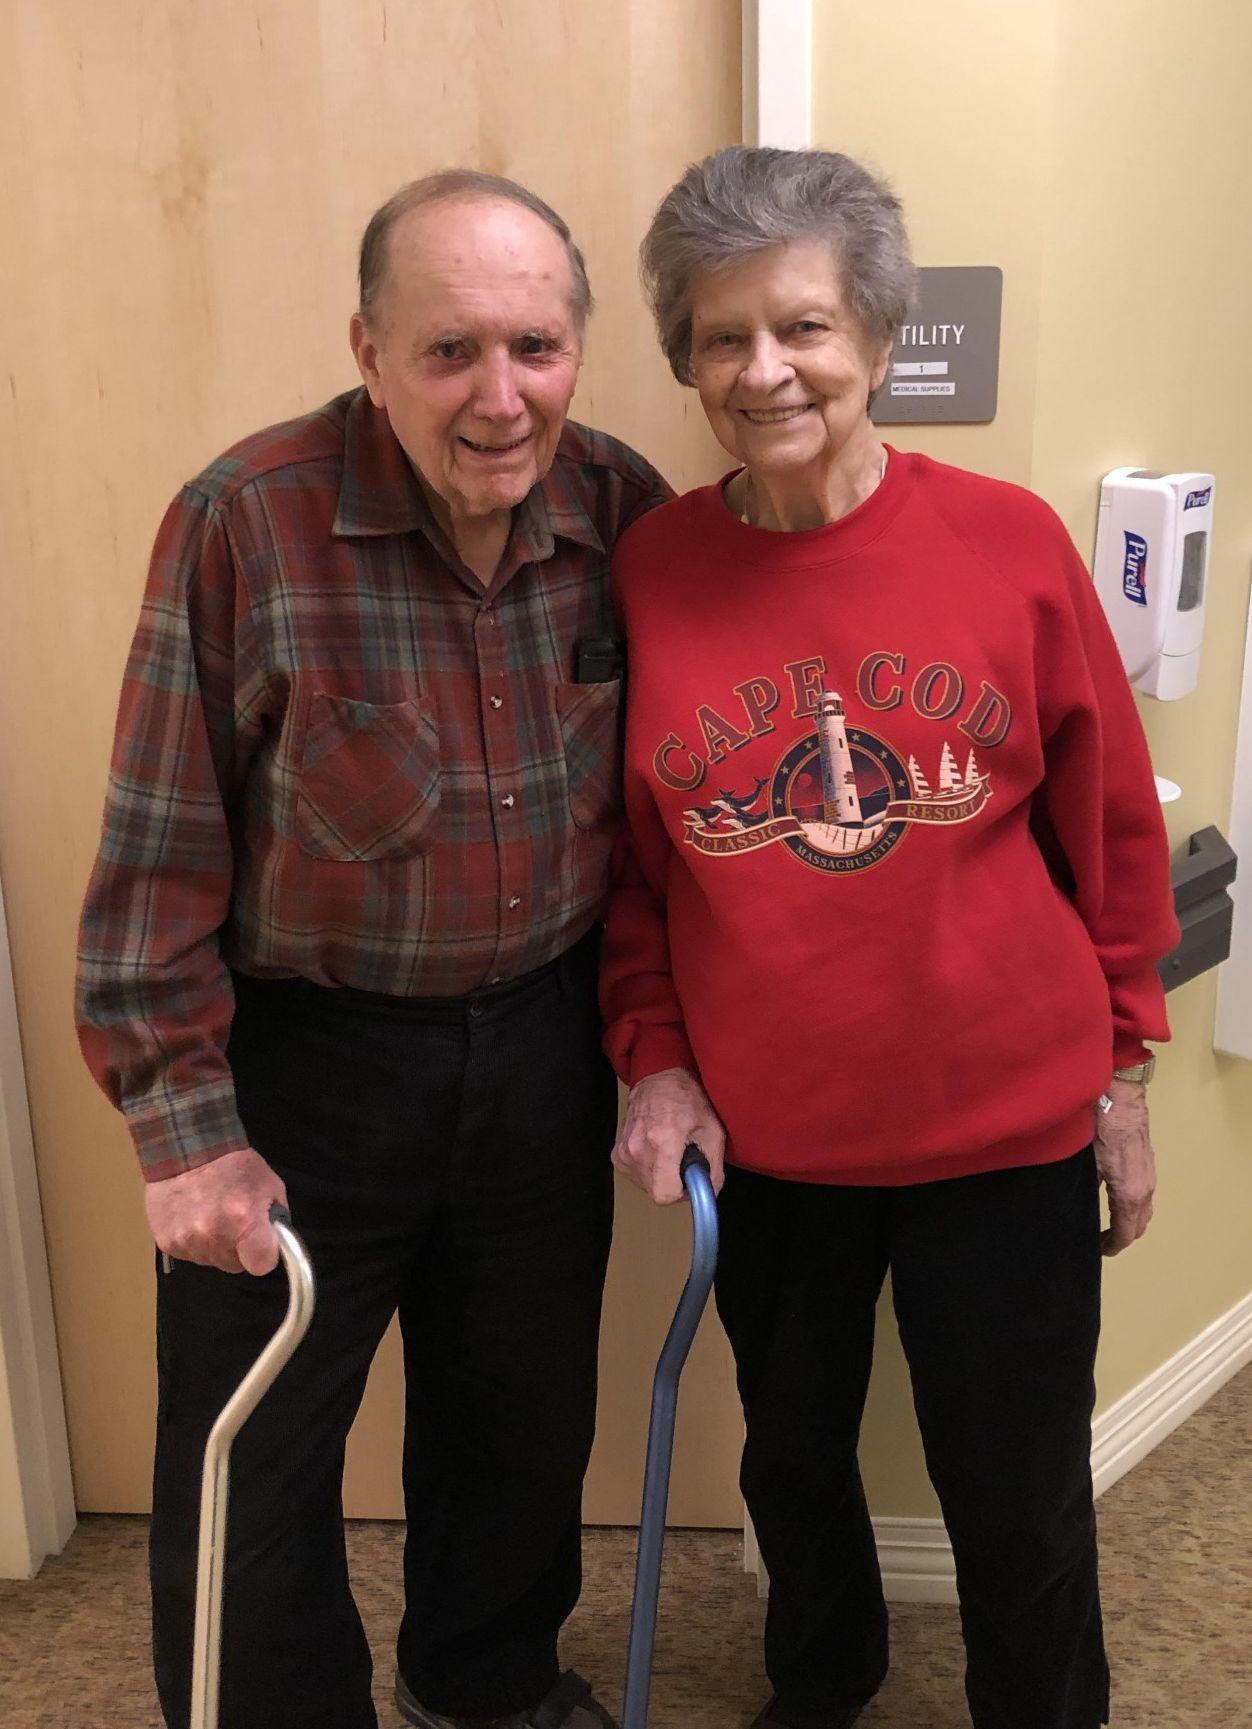 marriage, love, valentines day, assisted living, danbury